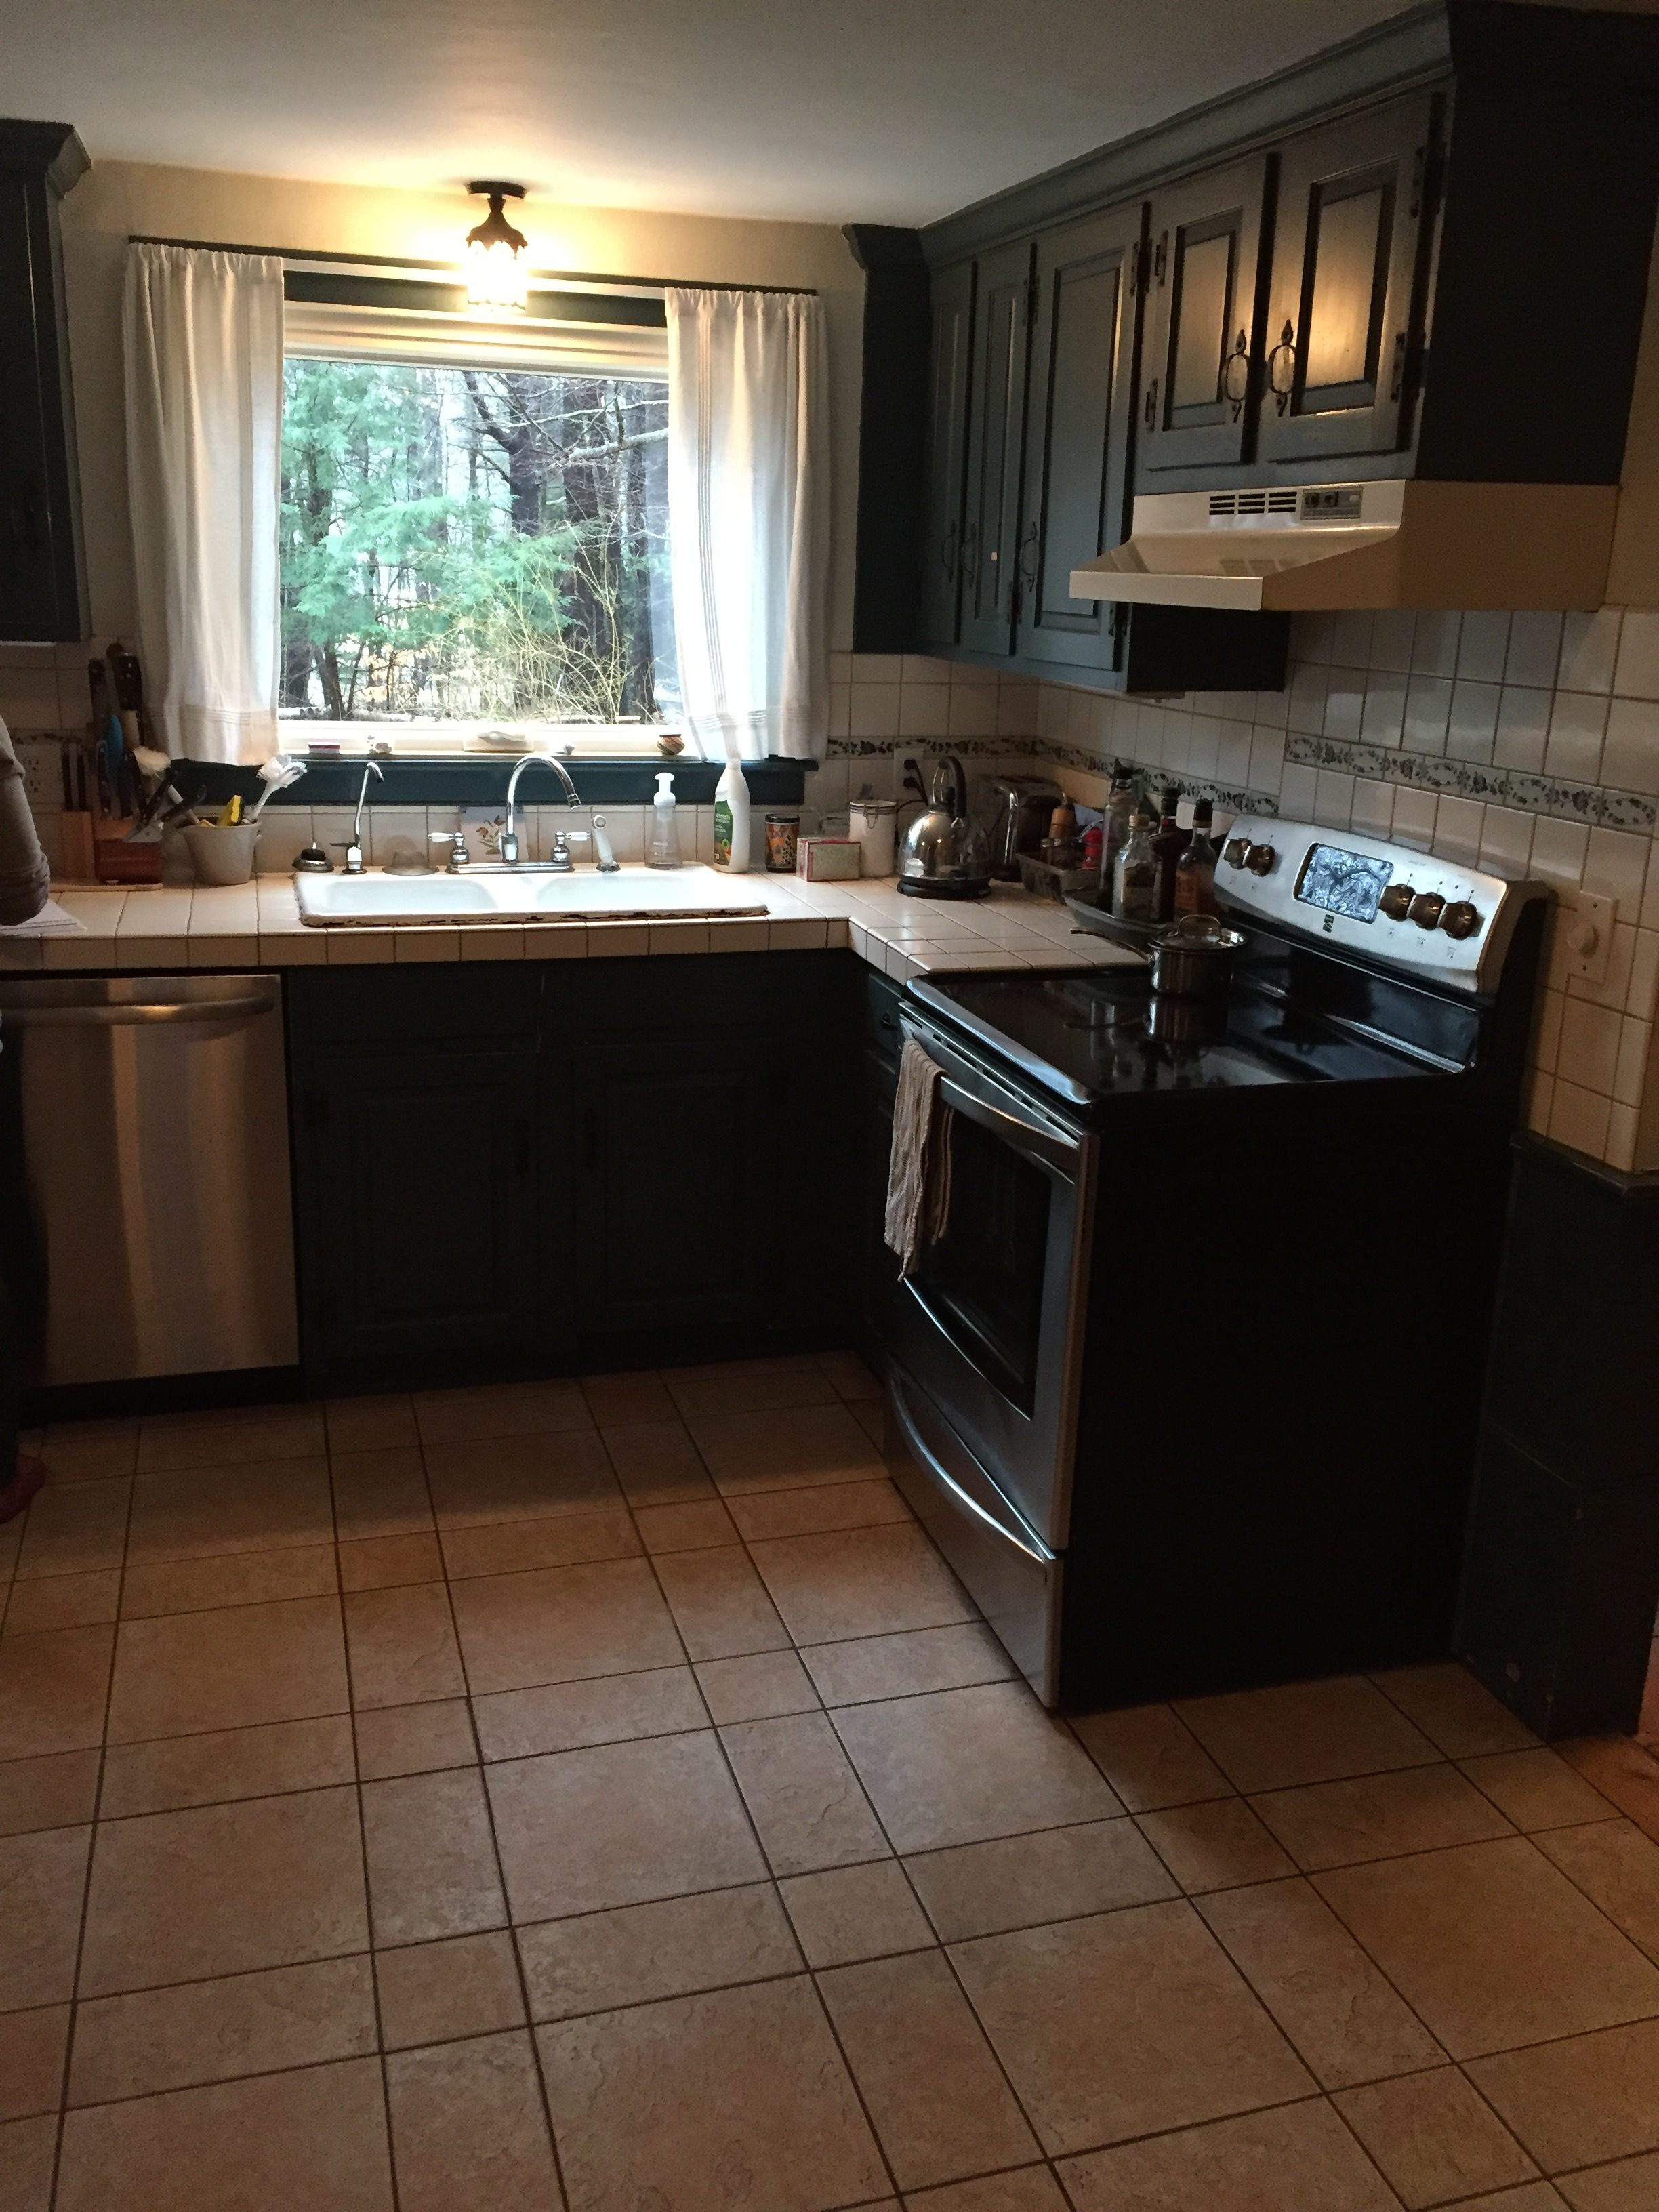 Our client was craving a brighter space that offered more counter top surface for food prep and entertaining.  They wanted to keep the existing tile floor and most appliances and fixtures in their current locations.